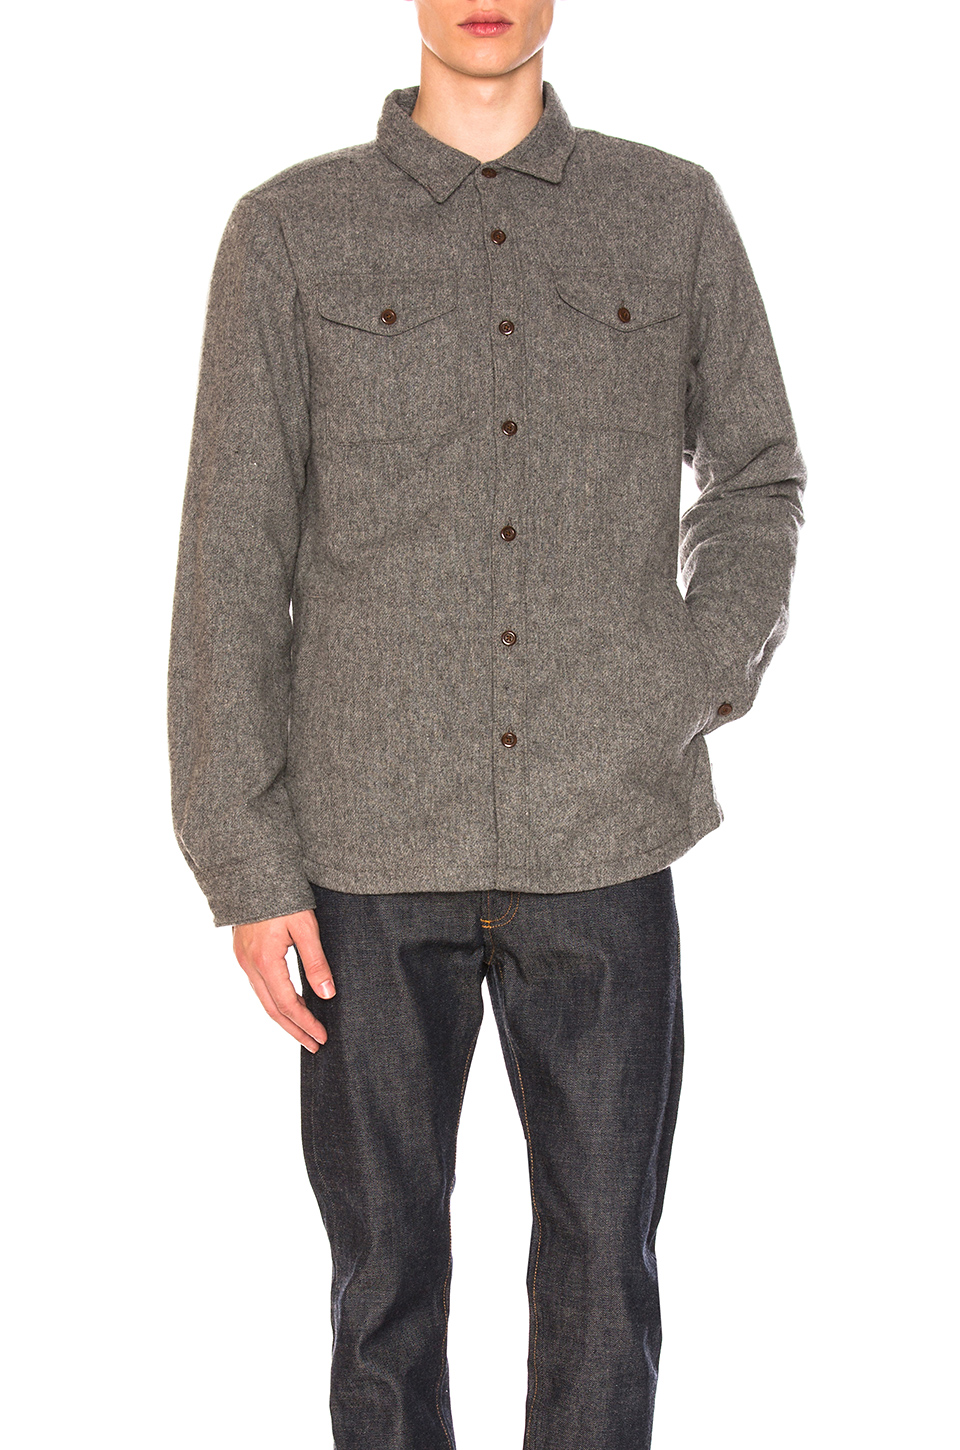 The North Face Cabin Fever Wool Shirt in TNF Medium Grey Heather